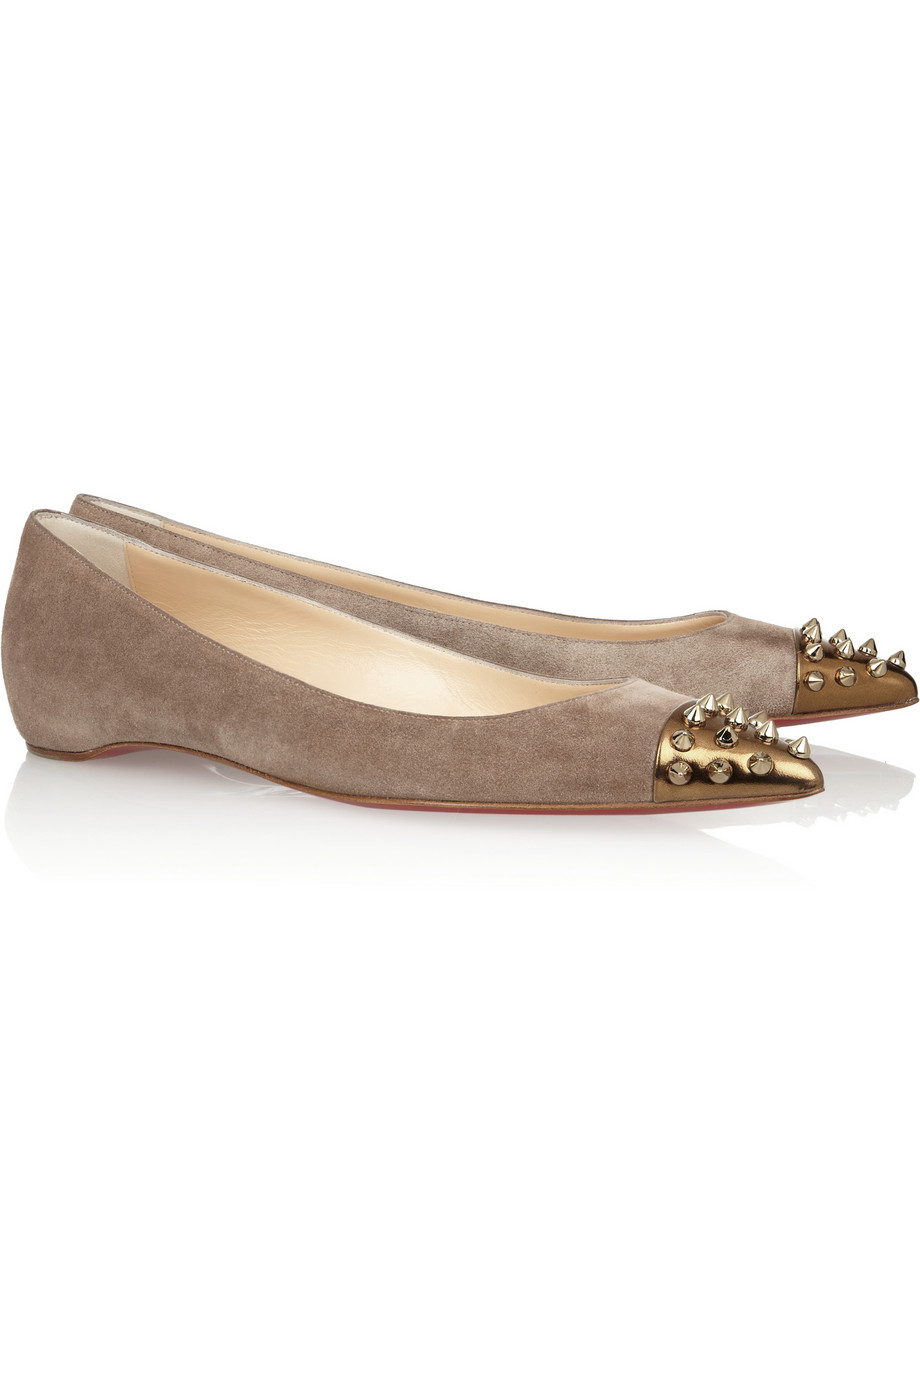 Lyst Christian Louboutin Geo Spiked Suede And Leather